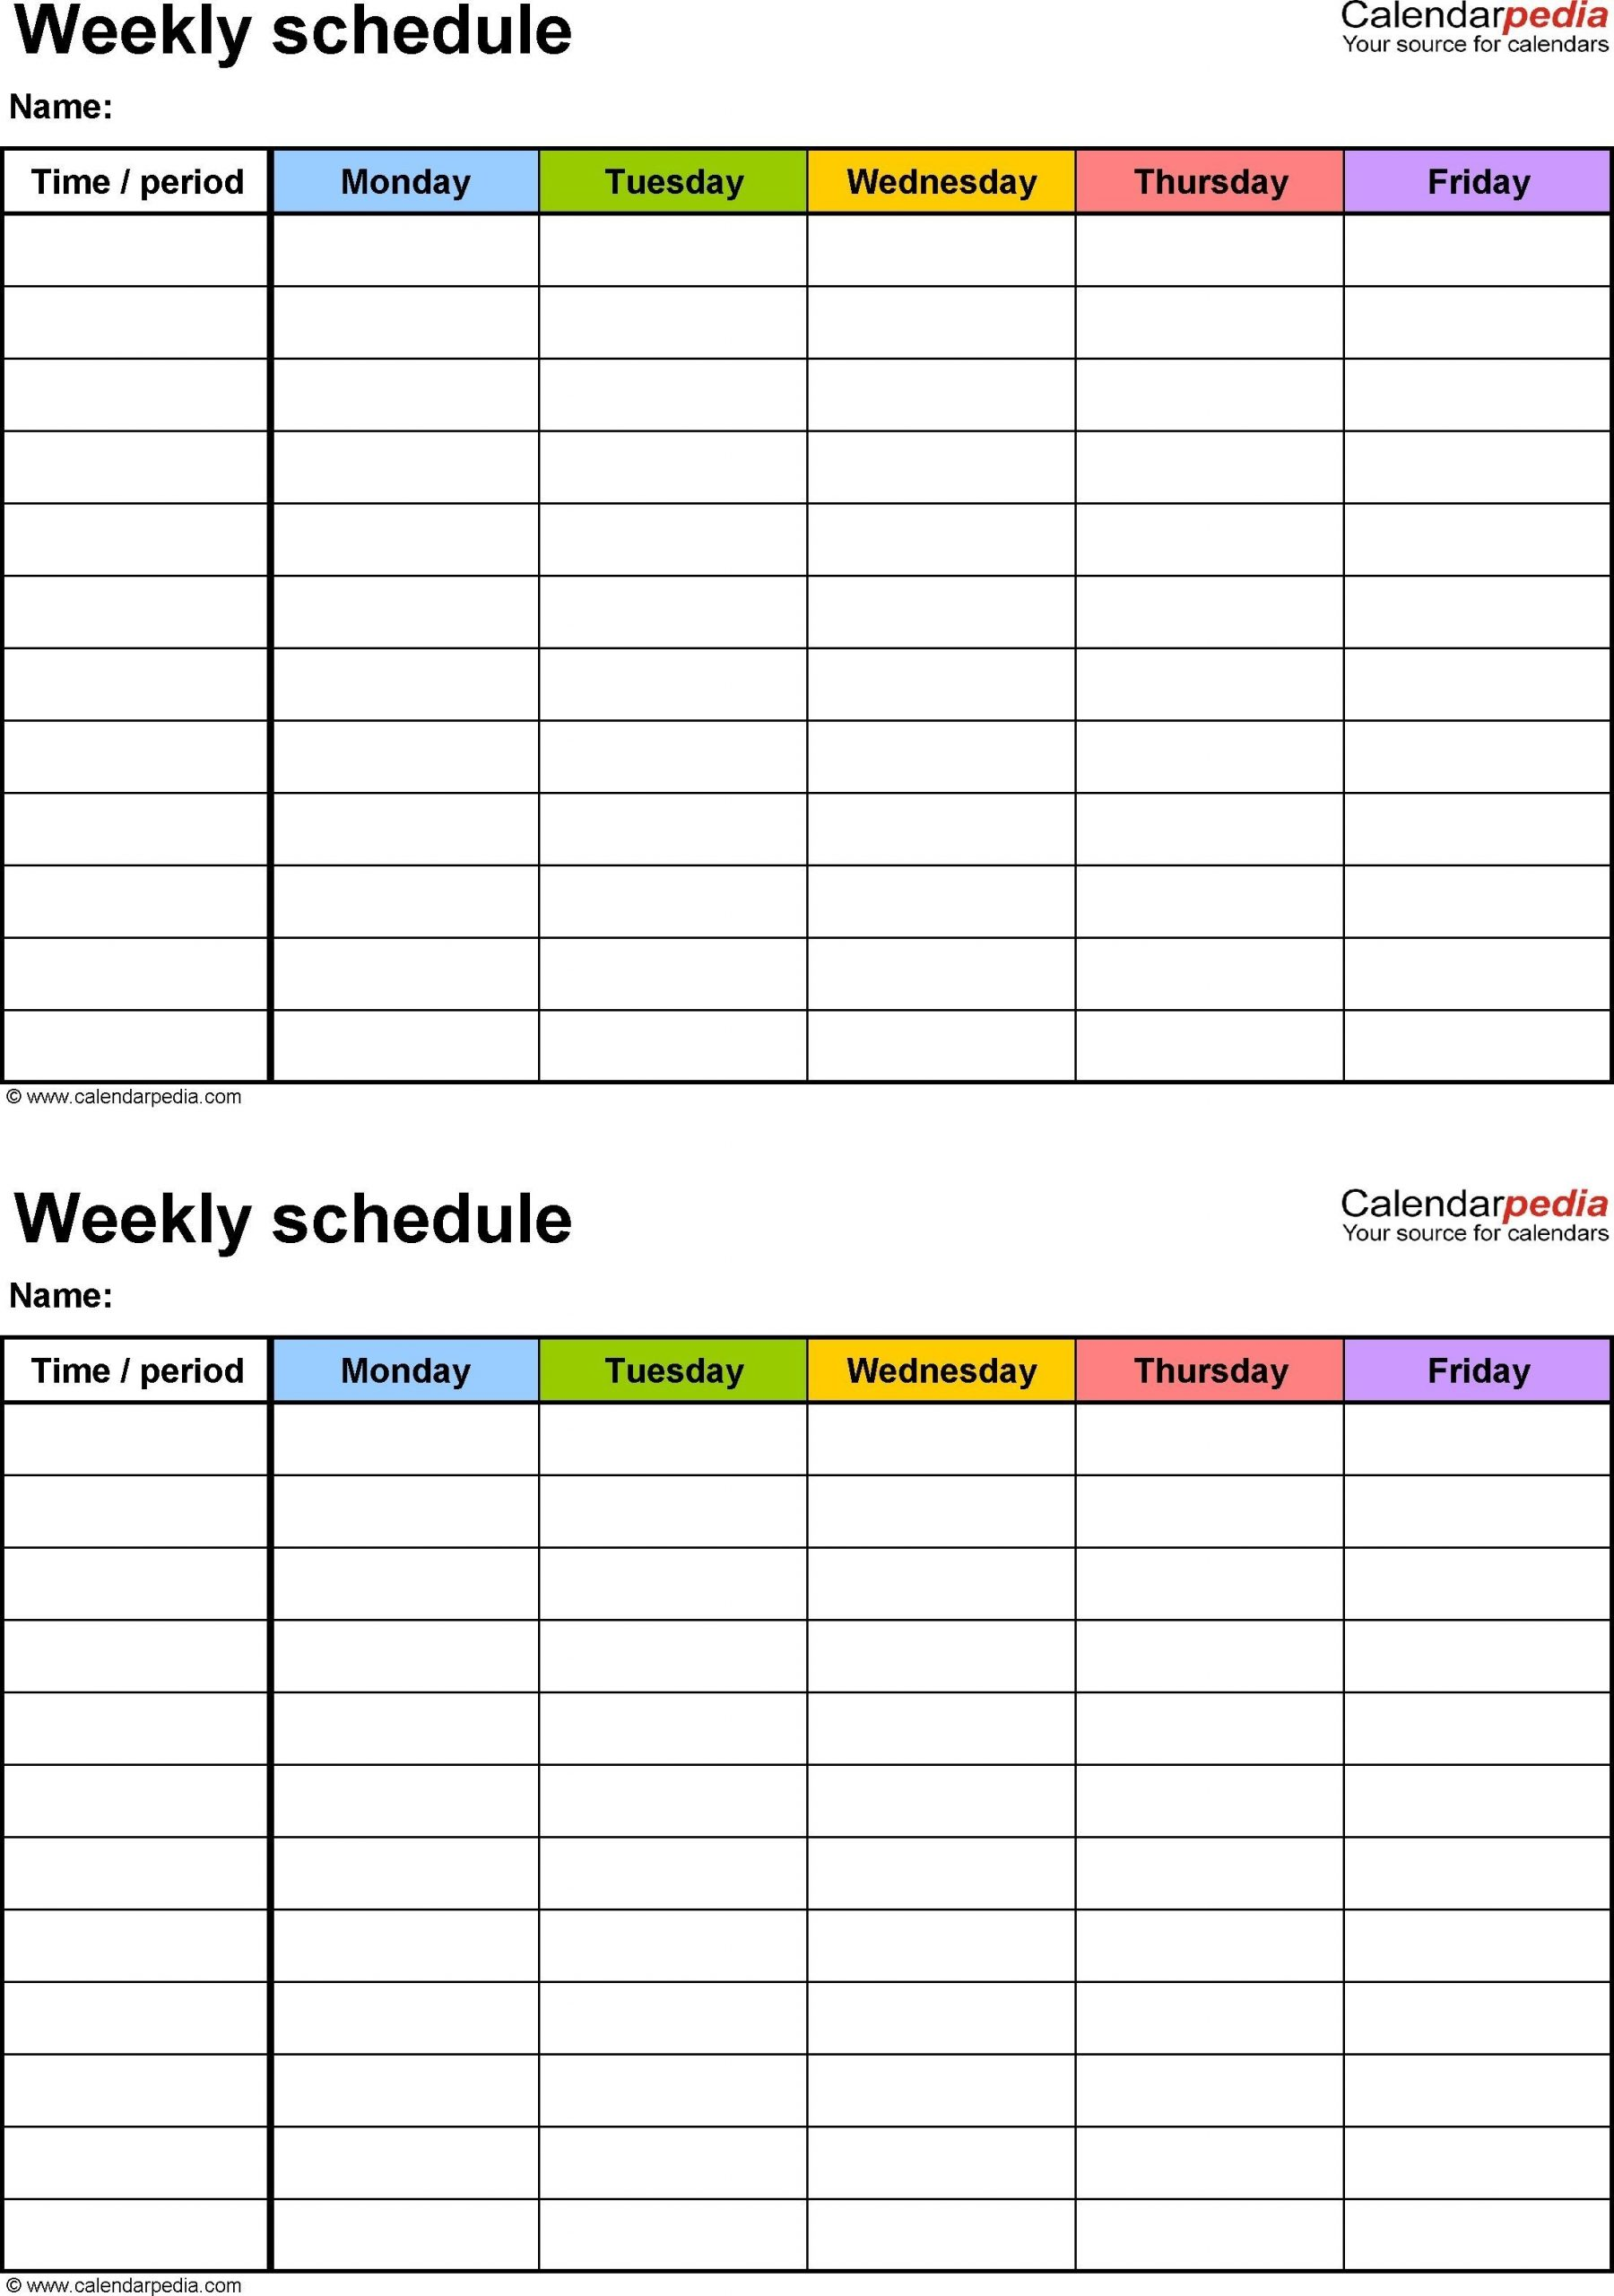 6 Week Calendar Template Word | Daily Schedule Template